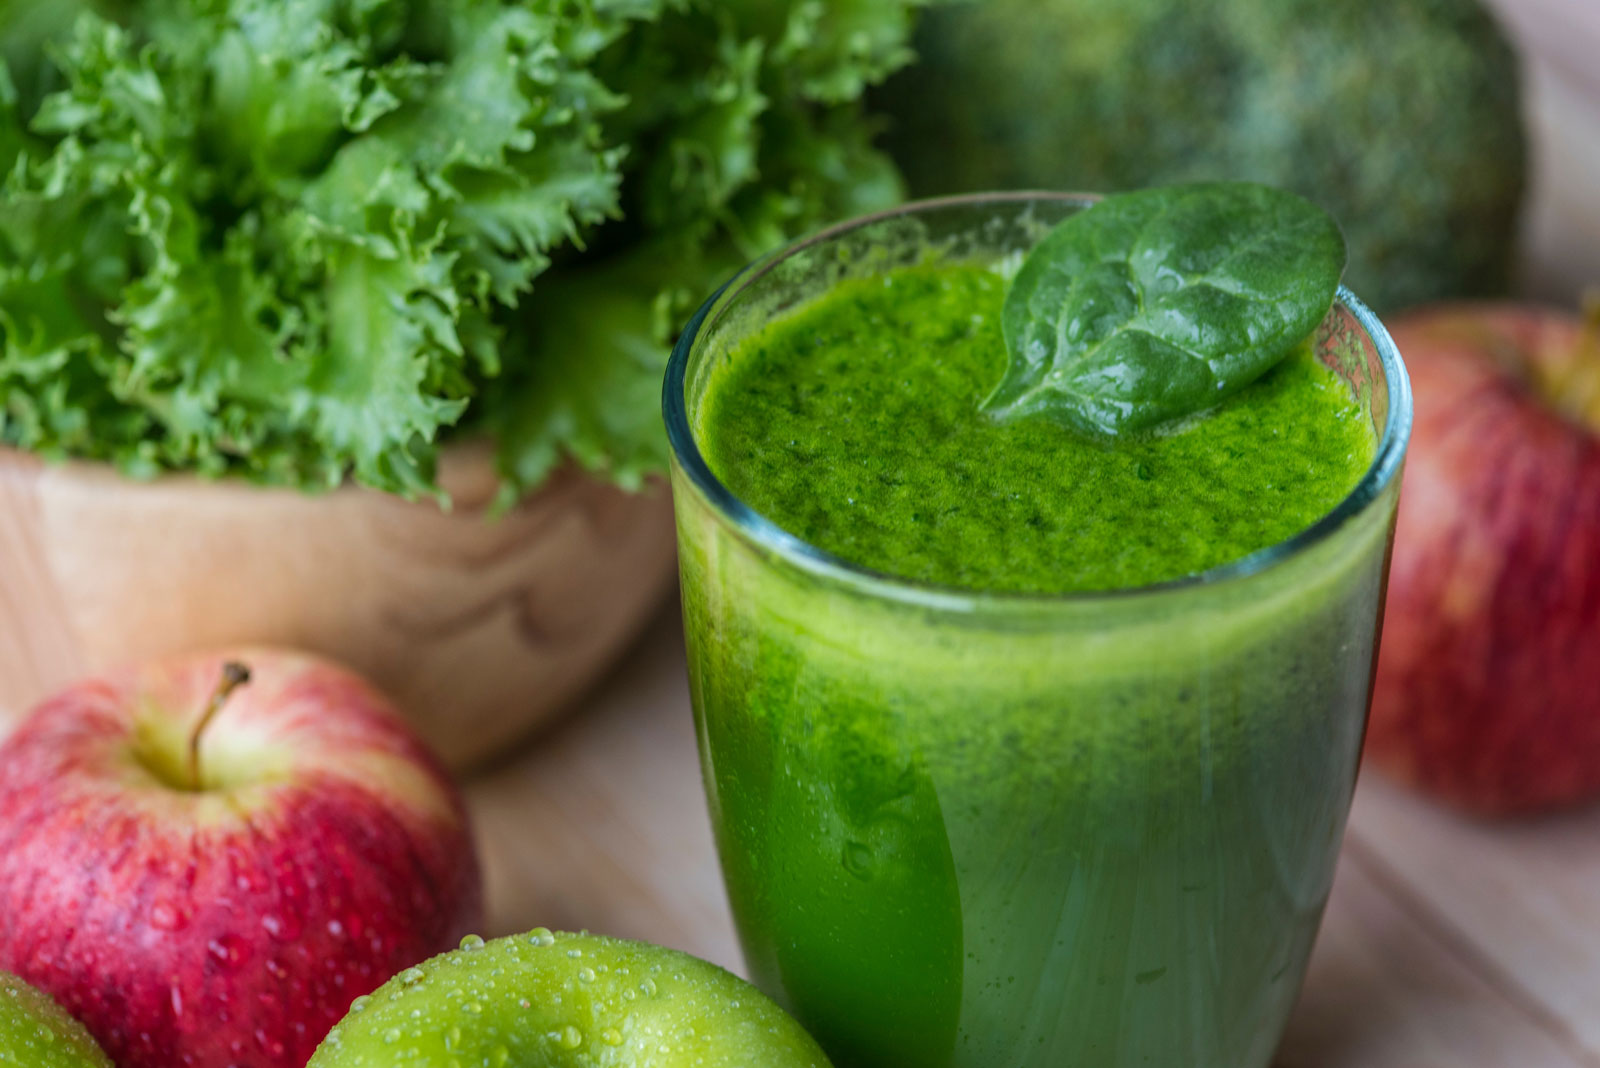 Spinach | The Best Fruits and Vegetables for Juicing With 3 Ingredients